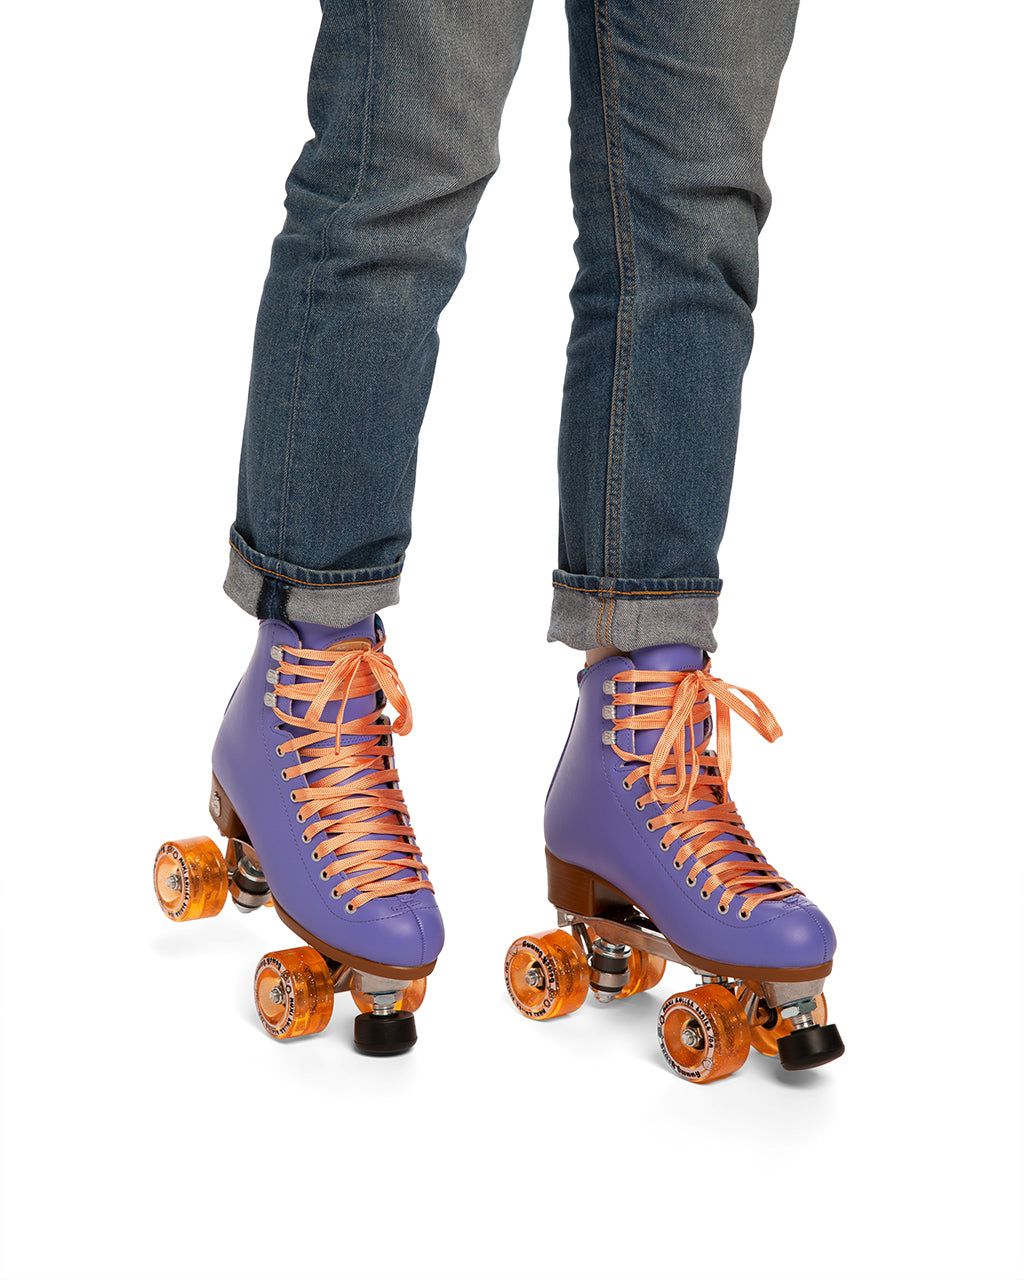 These periwinkle-colored roller-skates feature peach laces and sparkly peach wheels.